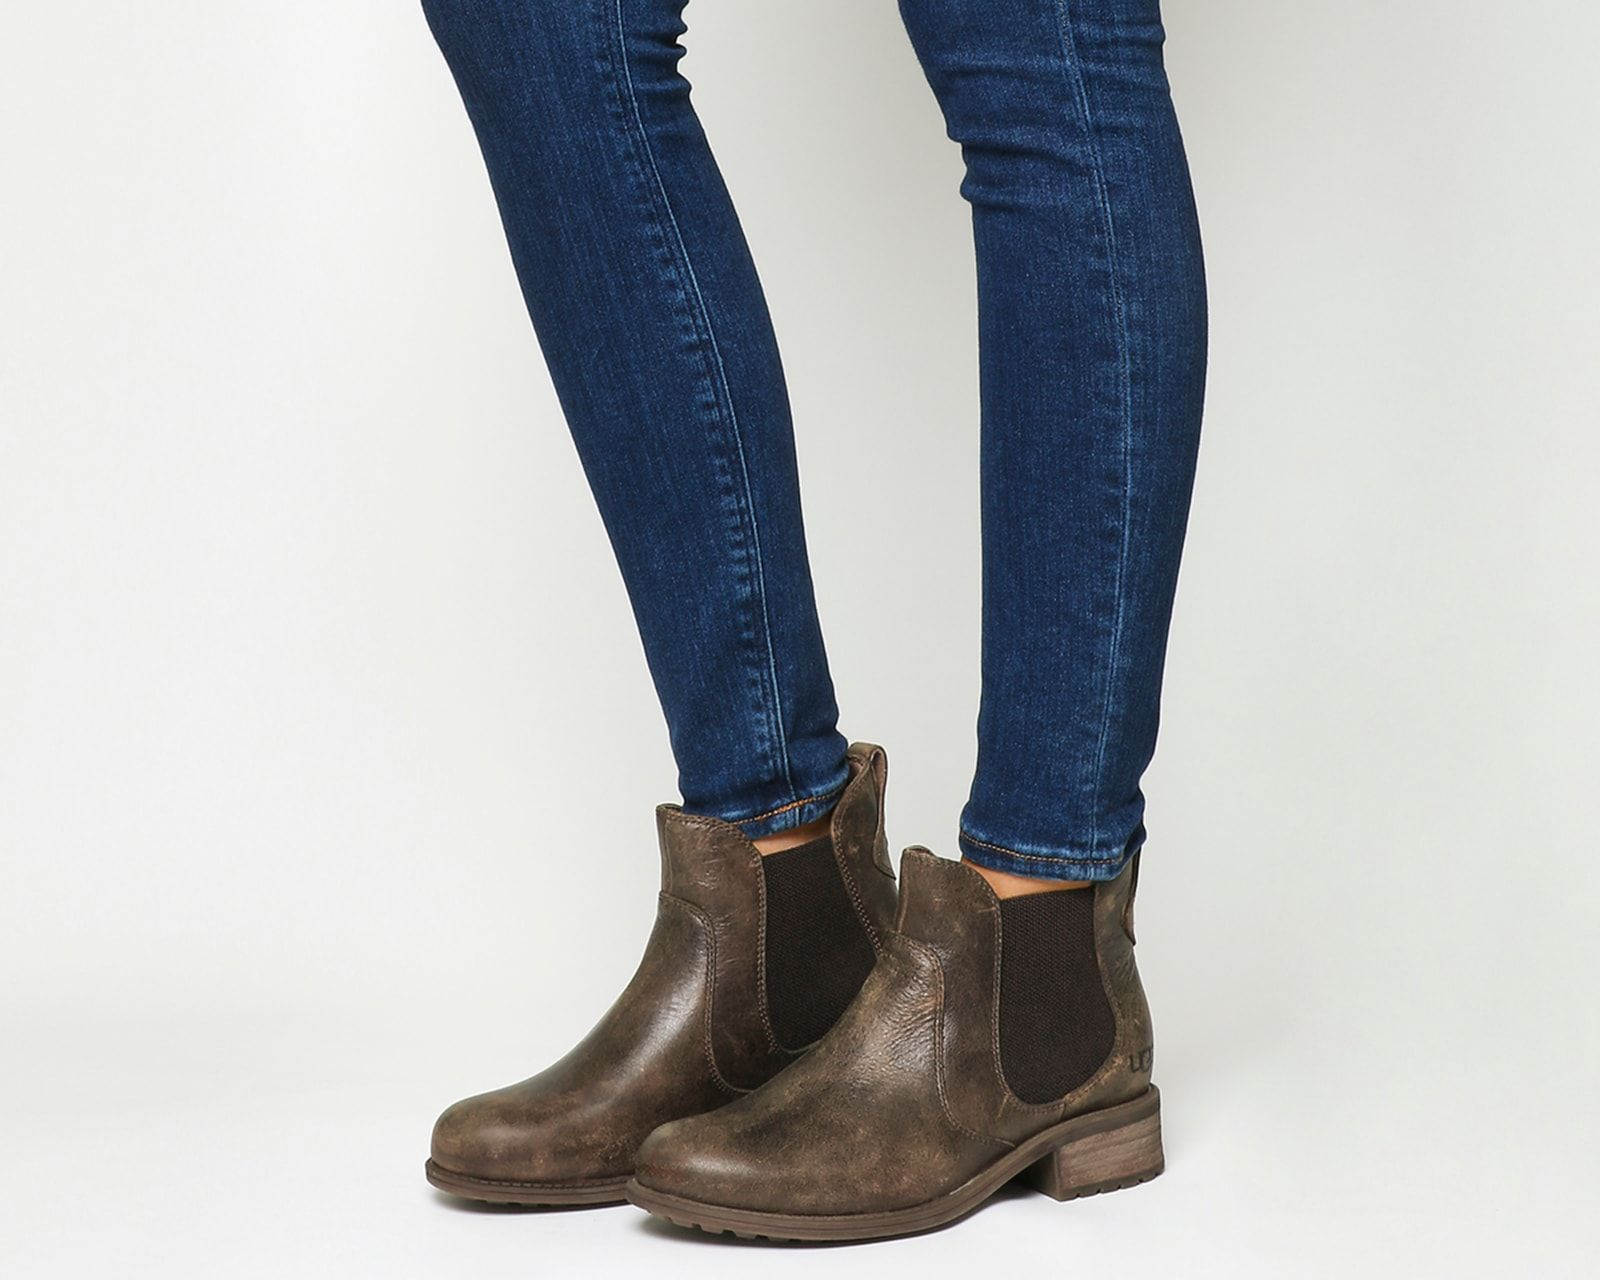 a28600a6ef6 Bonham Chelsea Boots | Fall | Ugg boots outfit, Chelsea boots, Boots